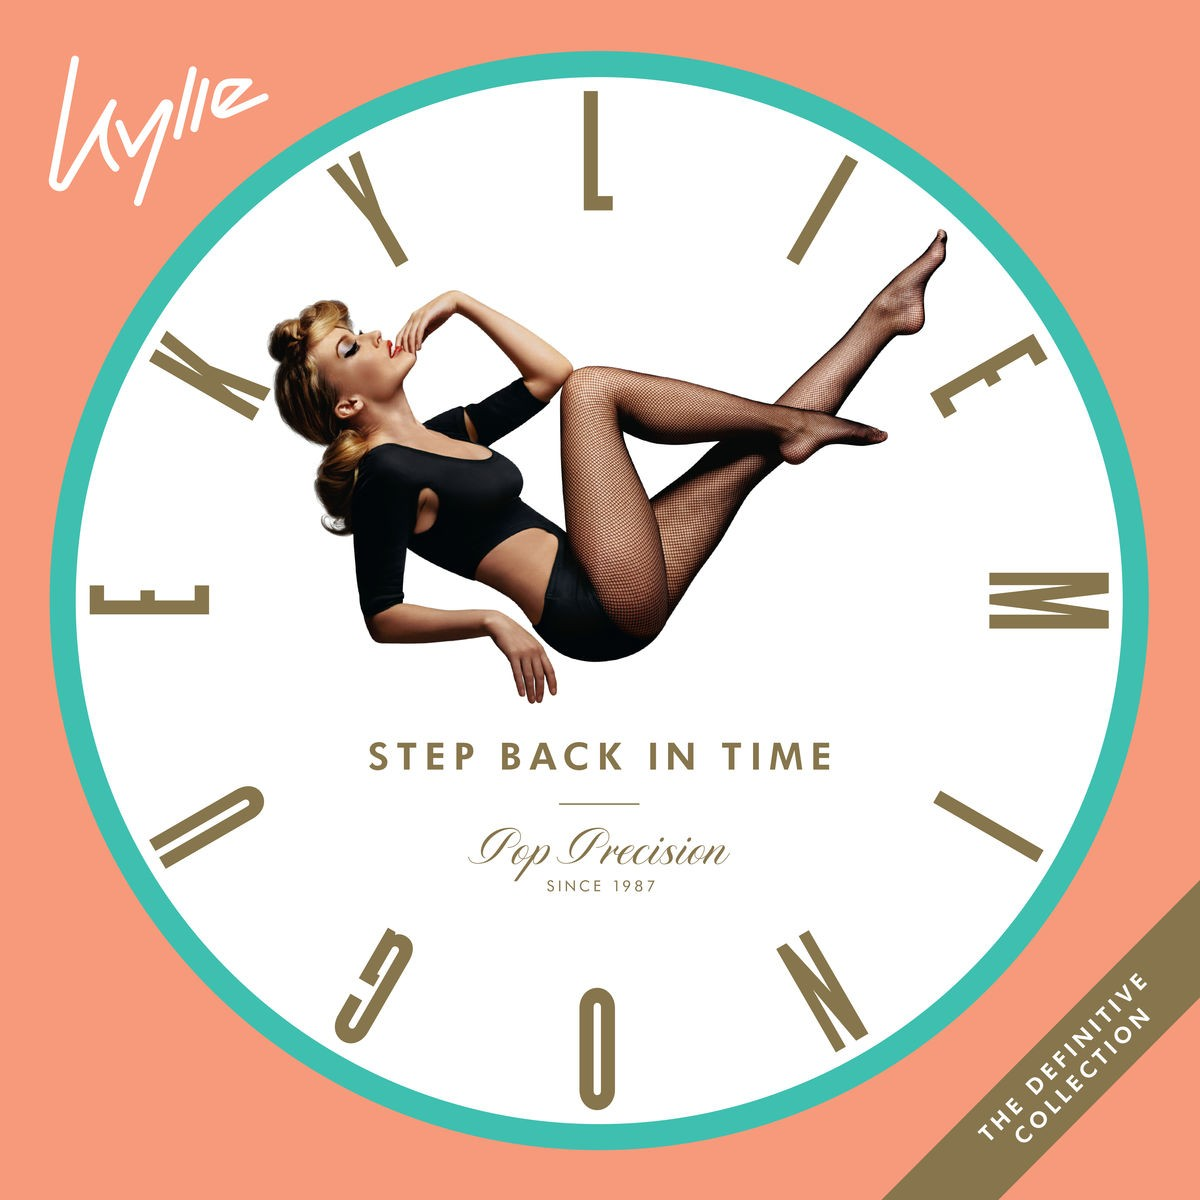 Kylie Minogue - Step Back in Time: The Definitive Collection (Limited Edition) VINYL - 5053850562